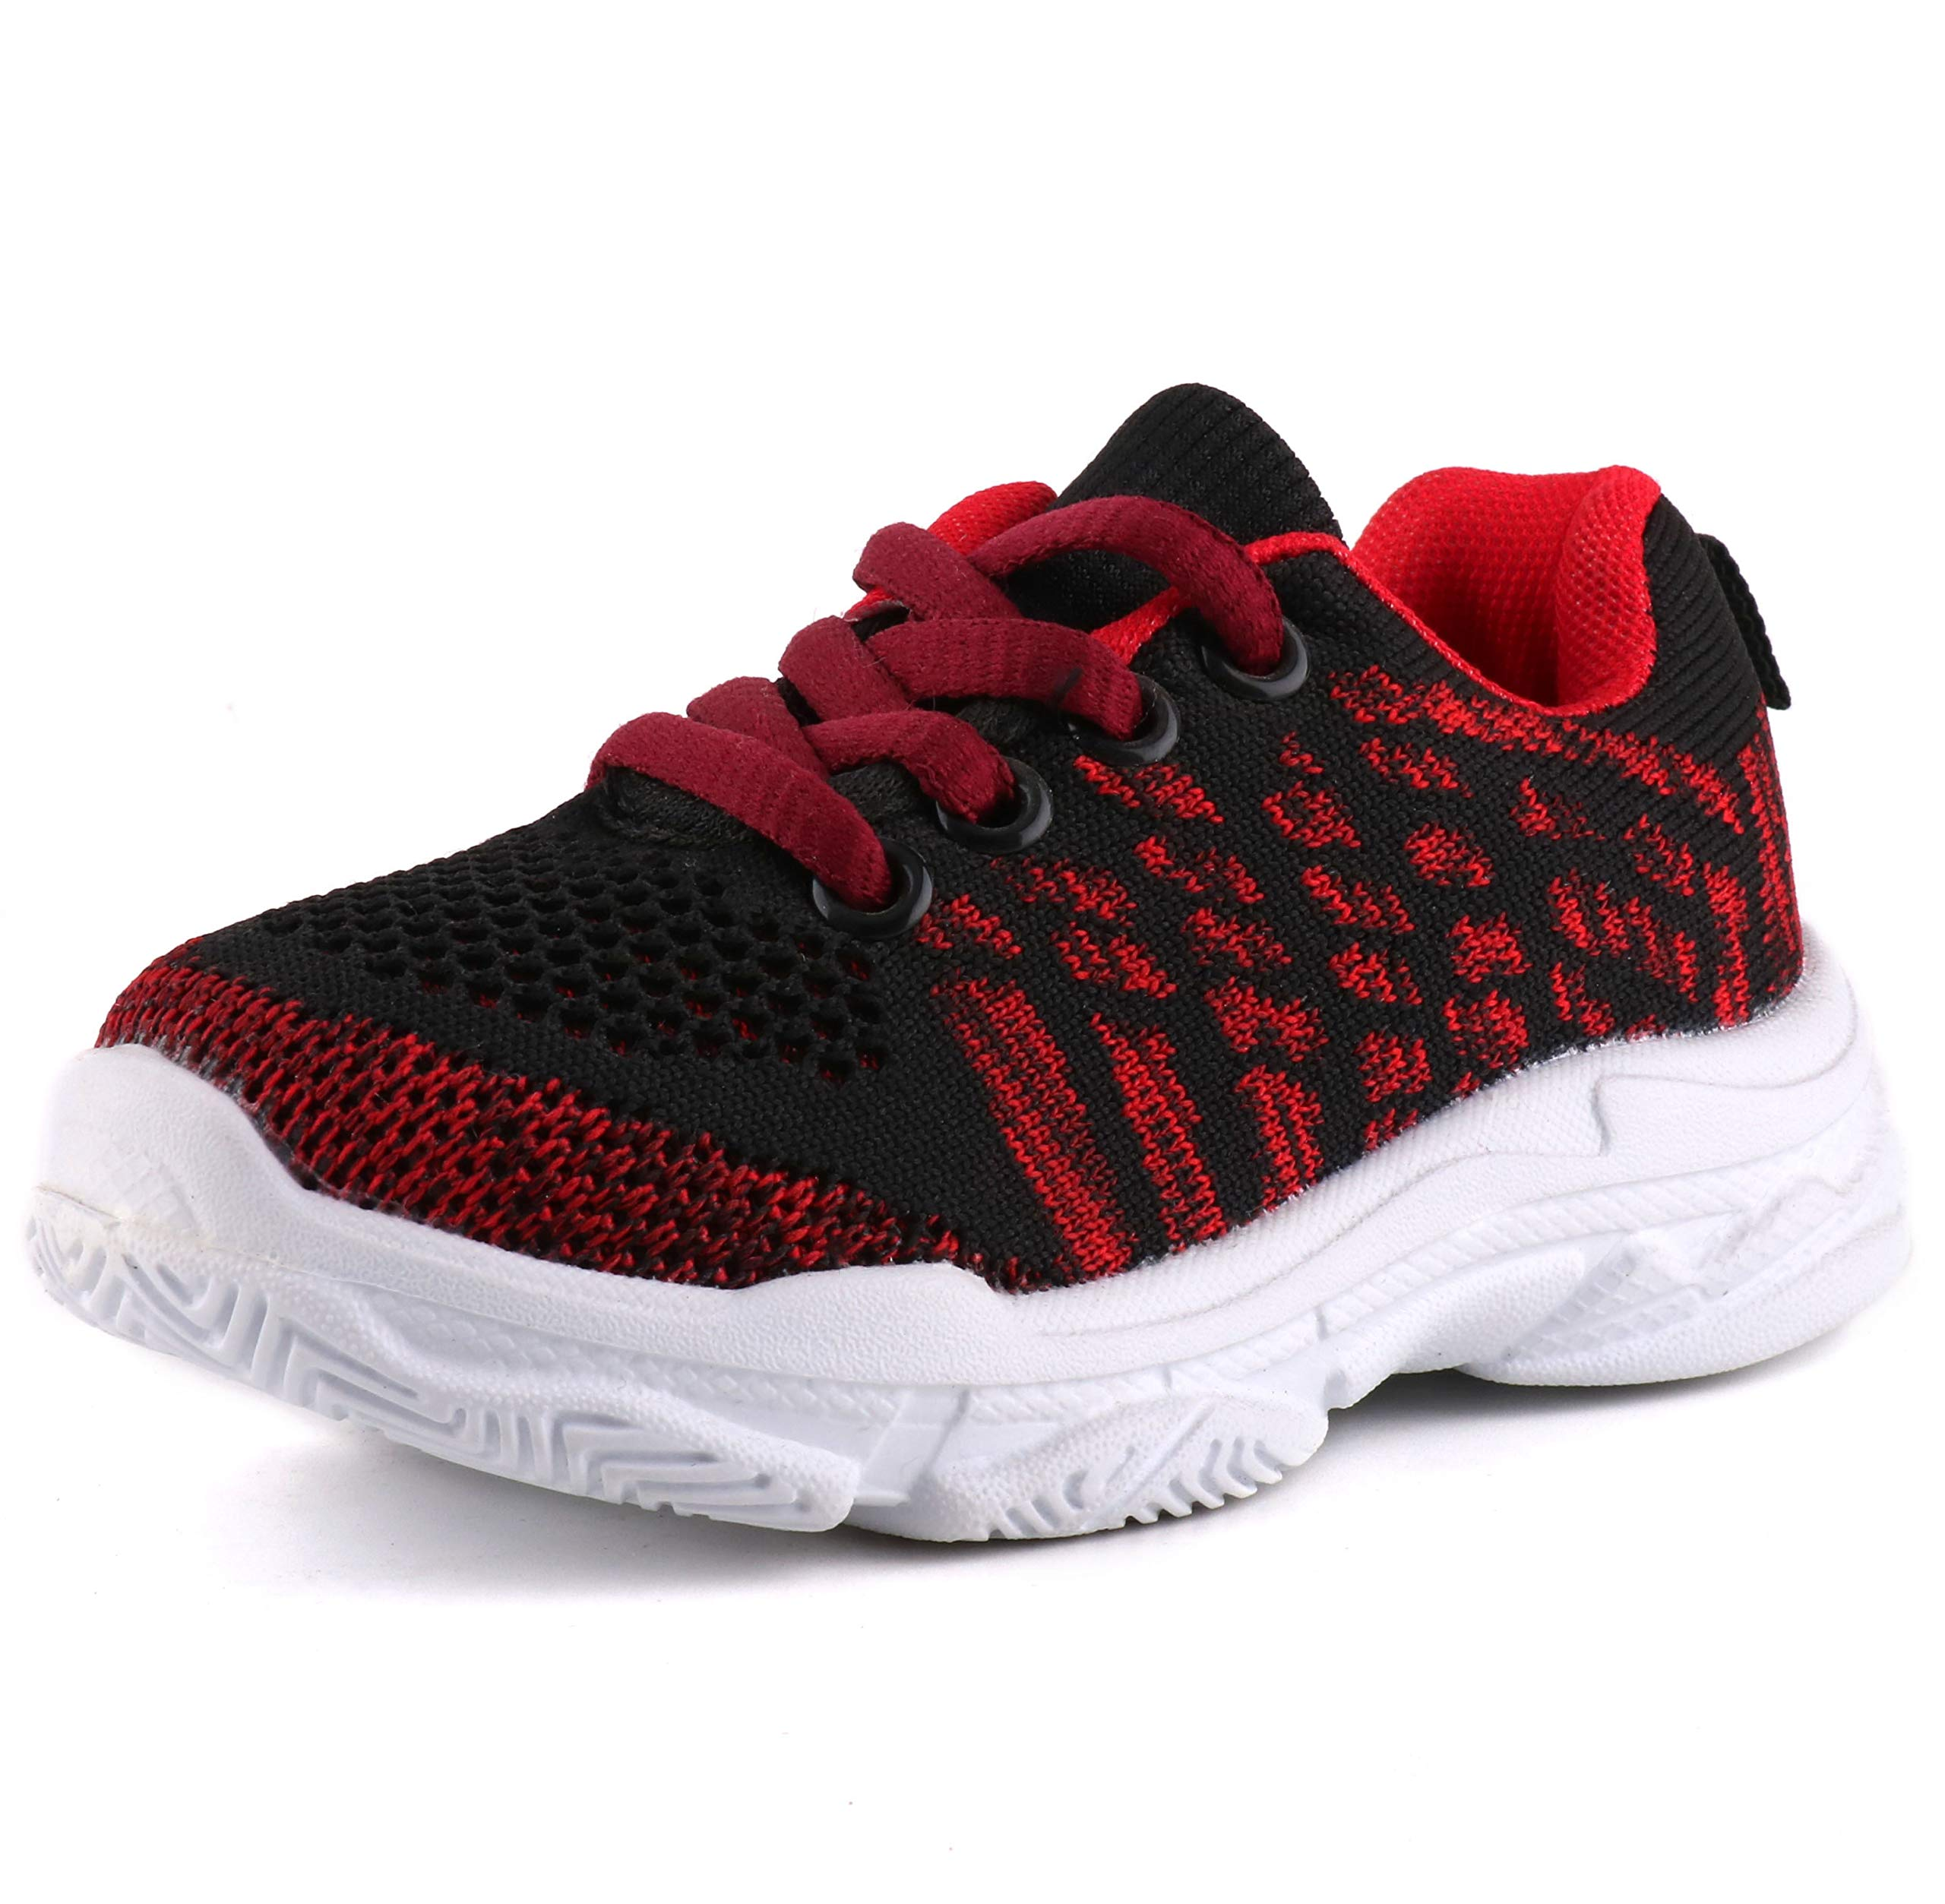 Moceen Kids Fashion Sneakers Ultra Lightweight Knit Breathable Athletic Running Walking Casual Shoes for Boys Girls,Red,8201 CN29